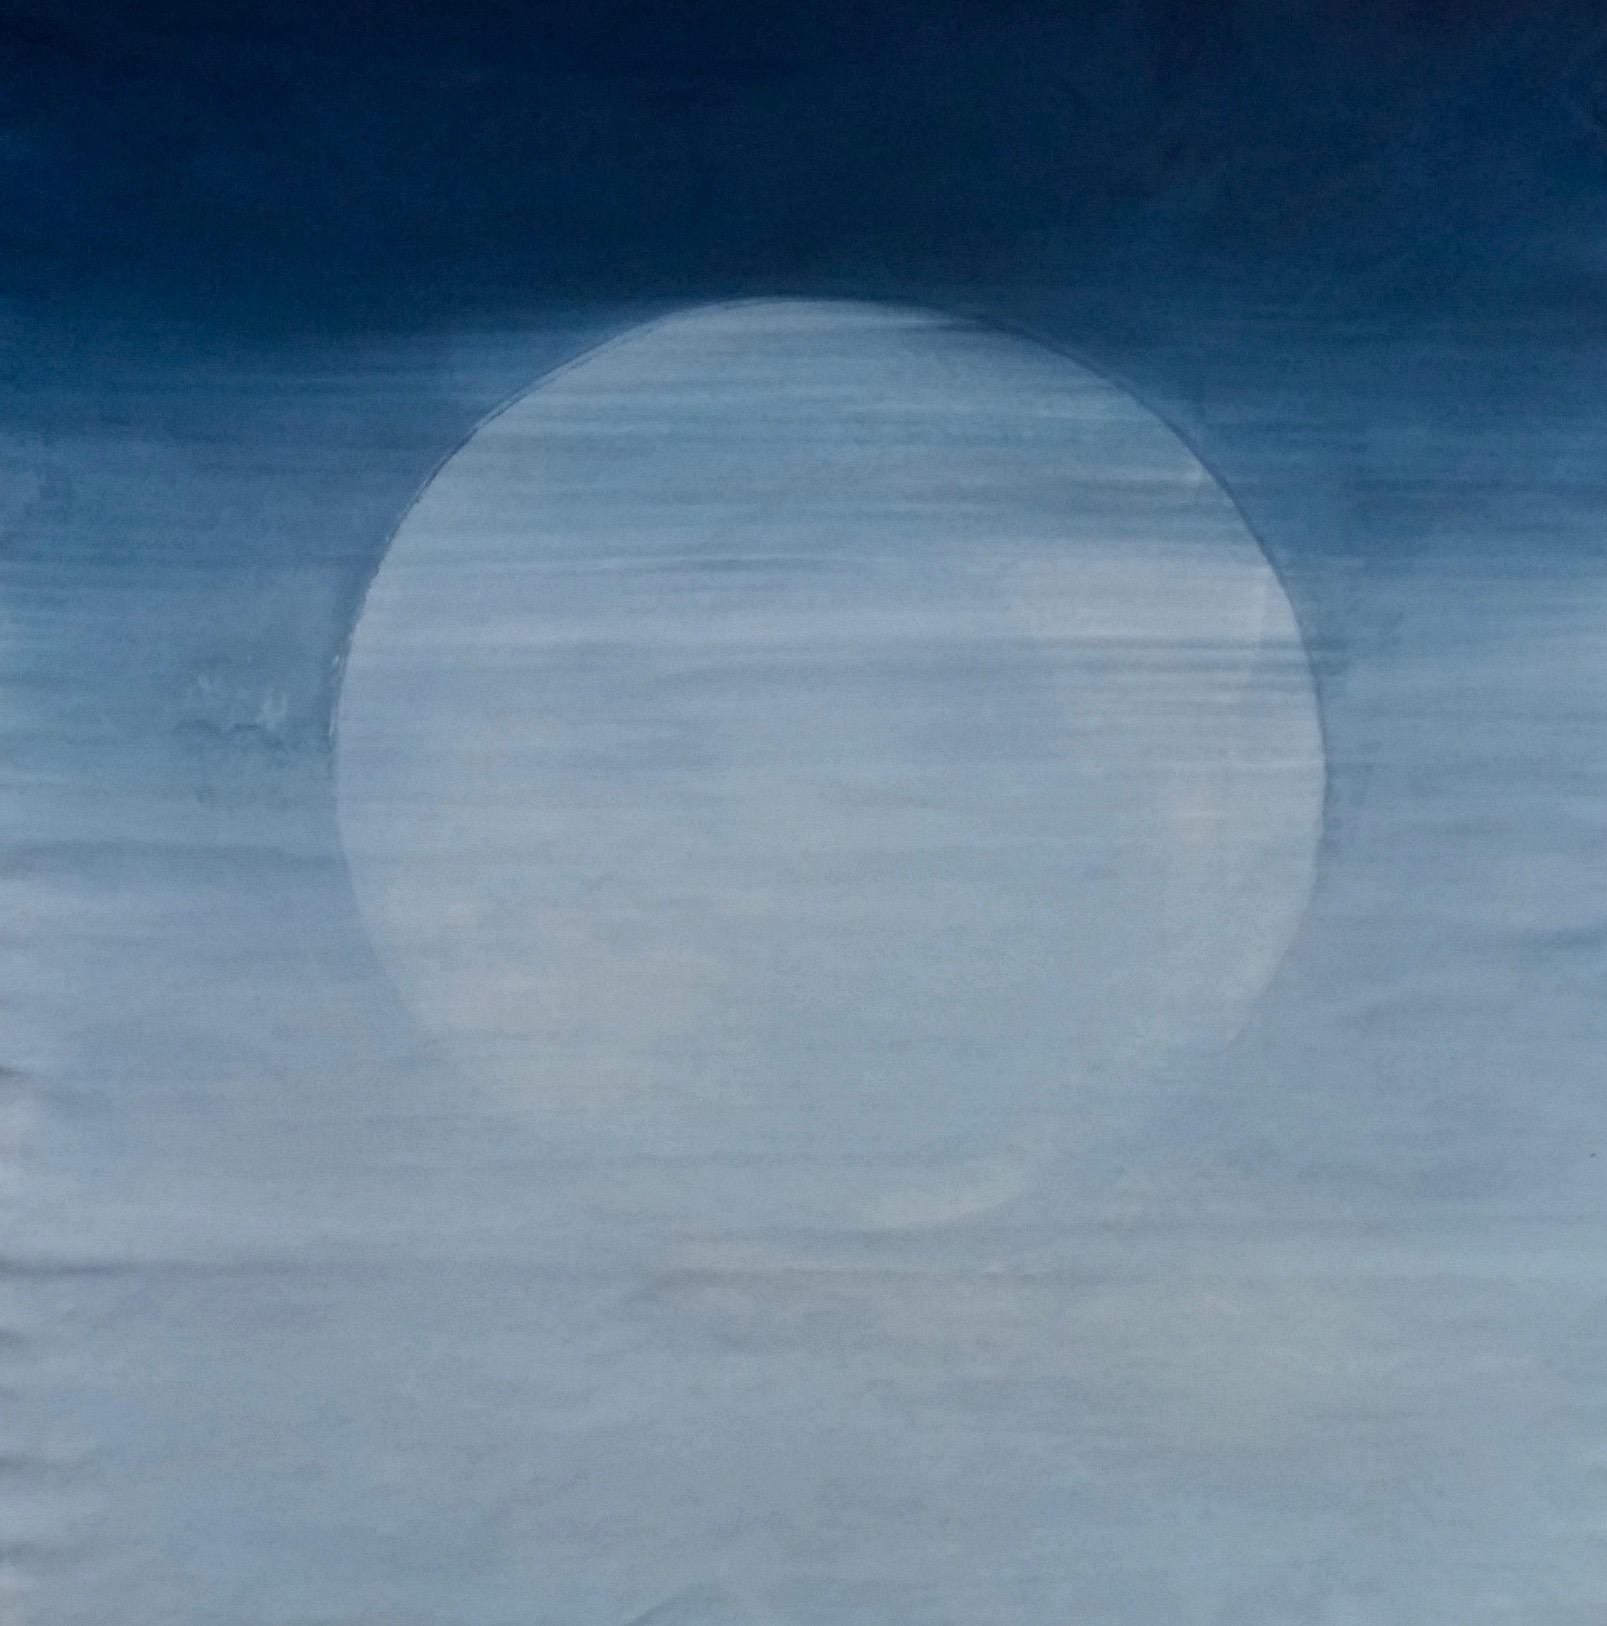 Lunar View, 2018  65 x 61 inches  Acrylic on unstretched canvas